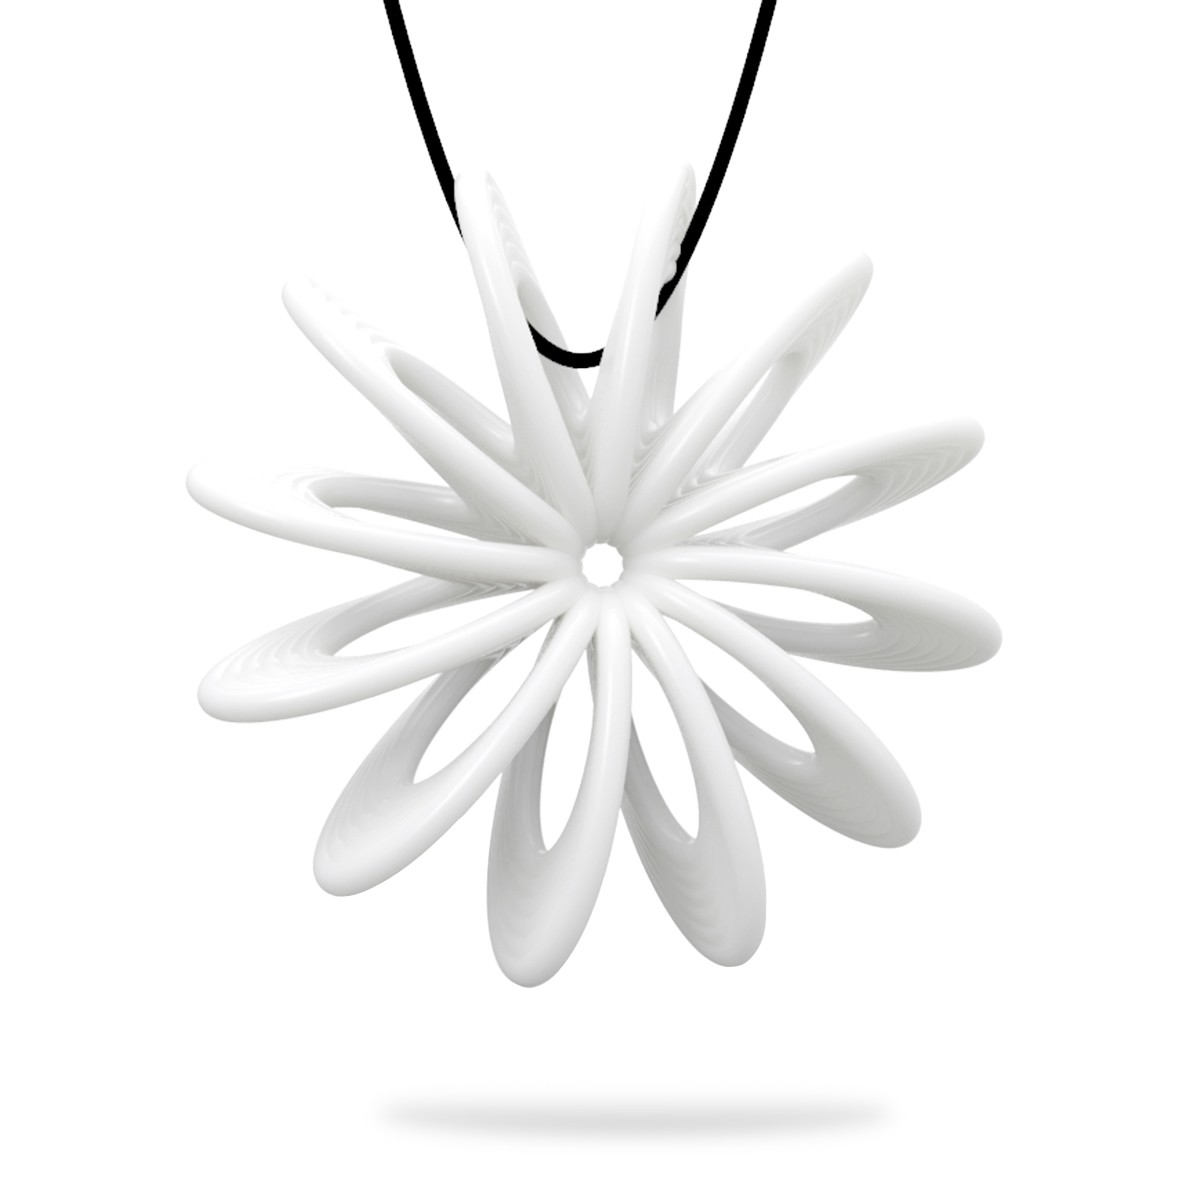 1200x1200 Best And Cheap White Tomfeel 3d Printed Jewelry Blooming Flower